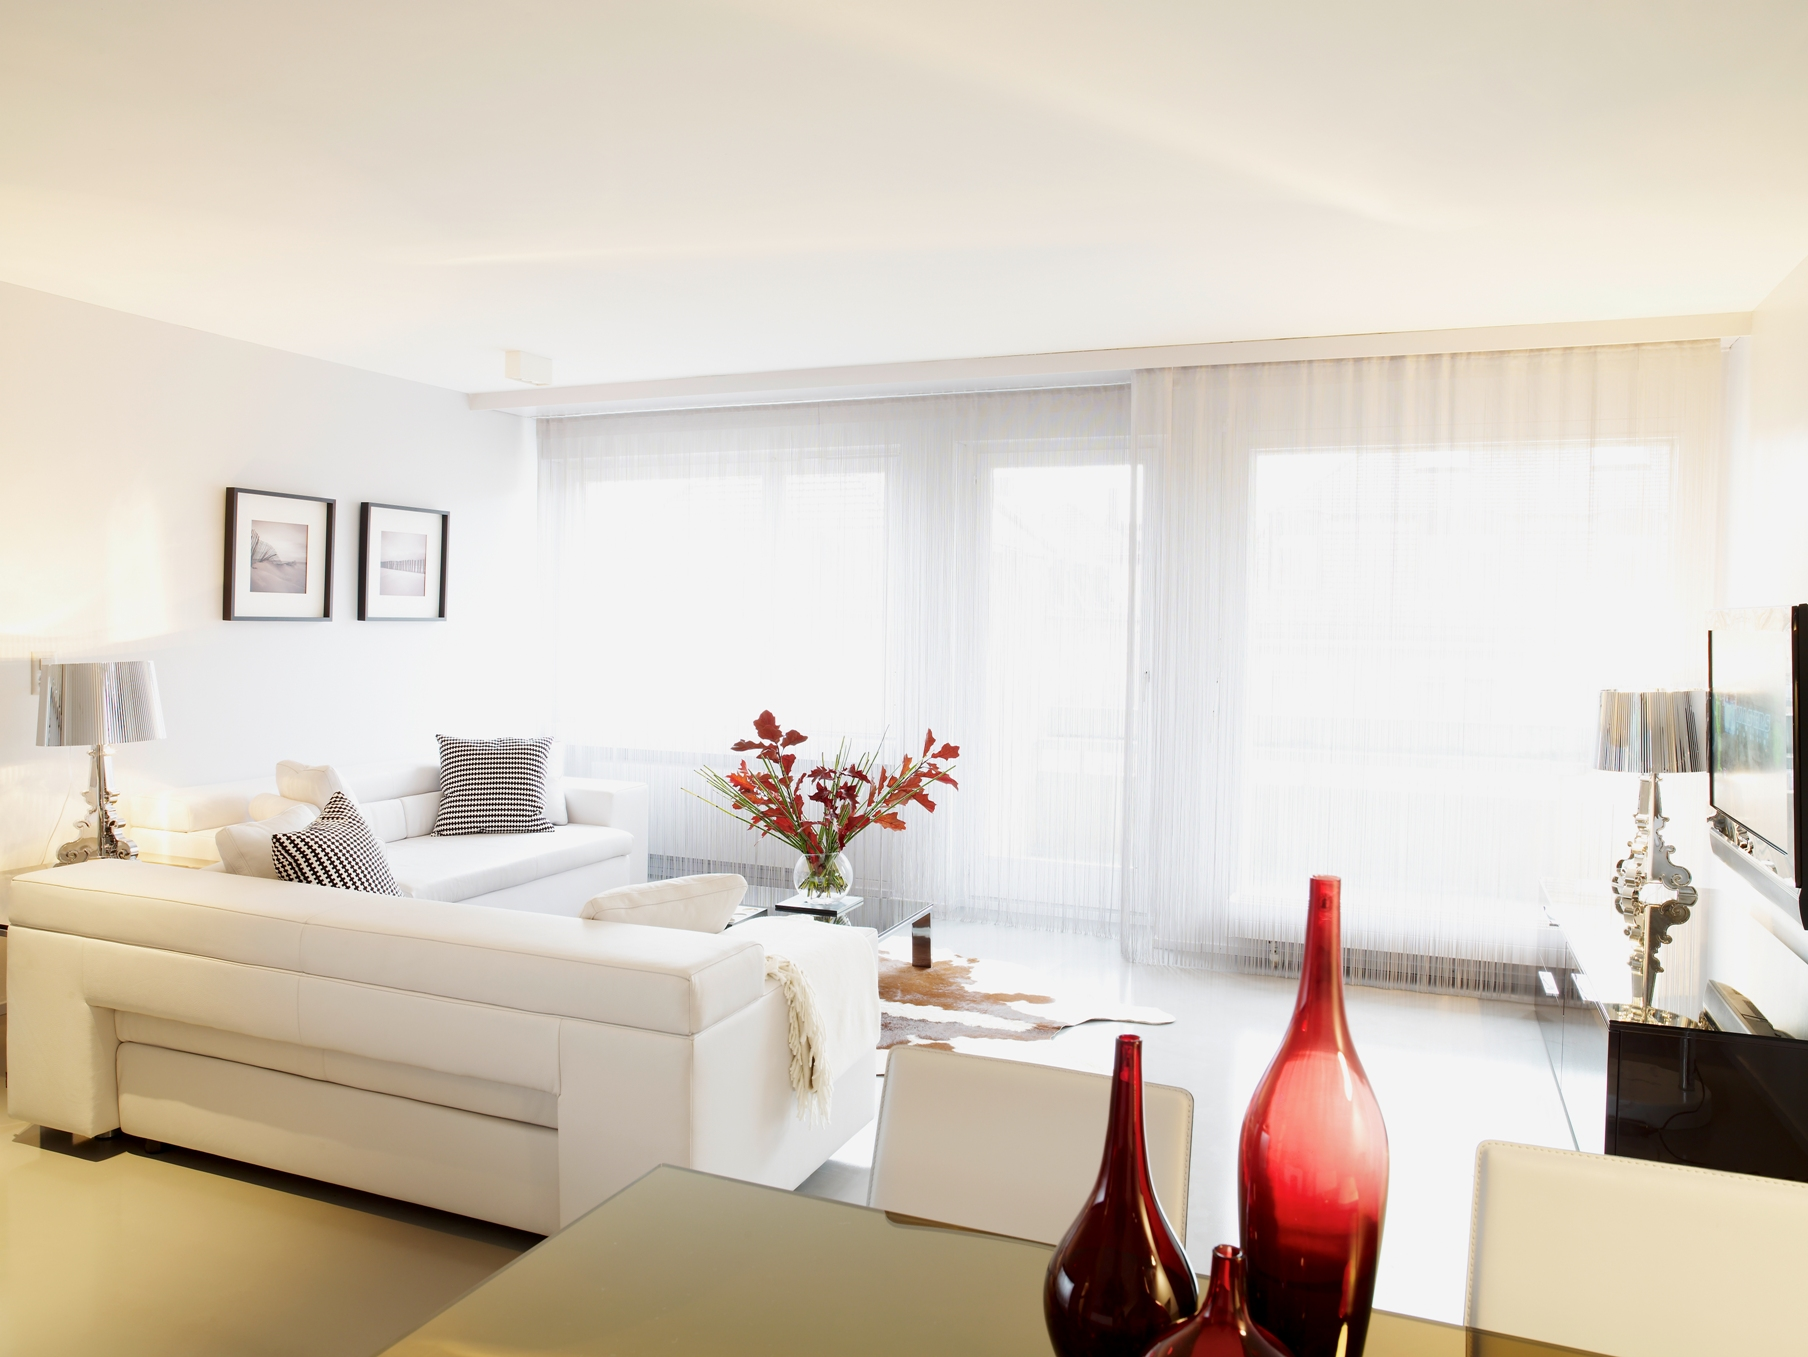 feuring e magazine visionapartments er ffnen serviced apartment haus in berlin weitere. Black Bedroom Furniture Sets. Home Design Ideas